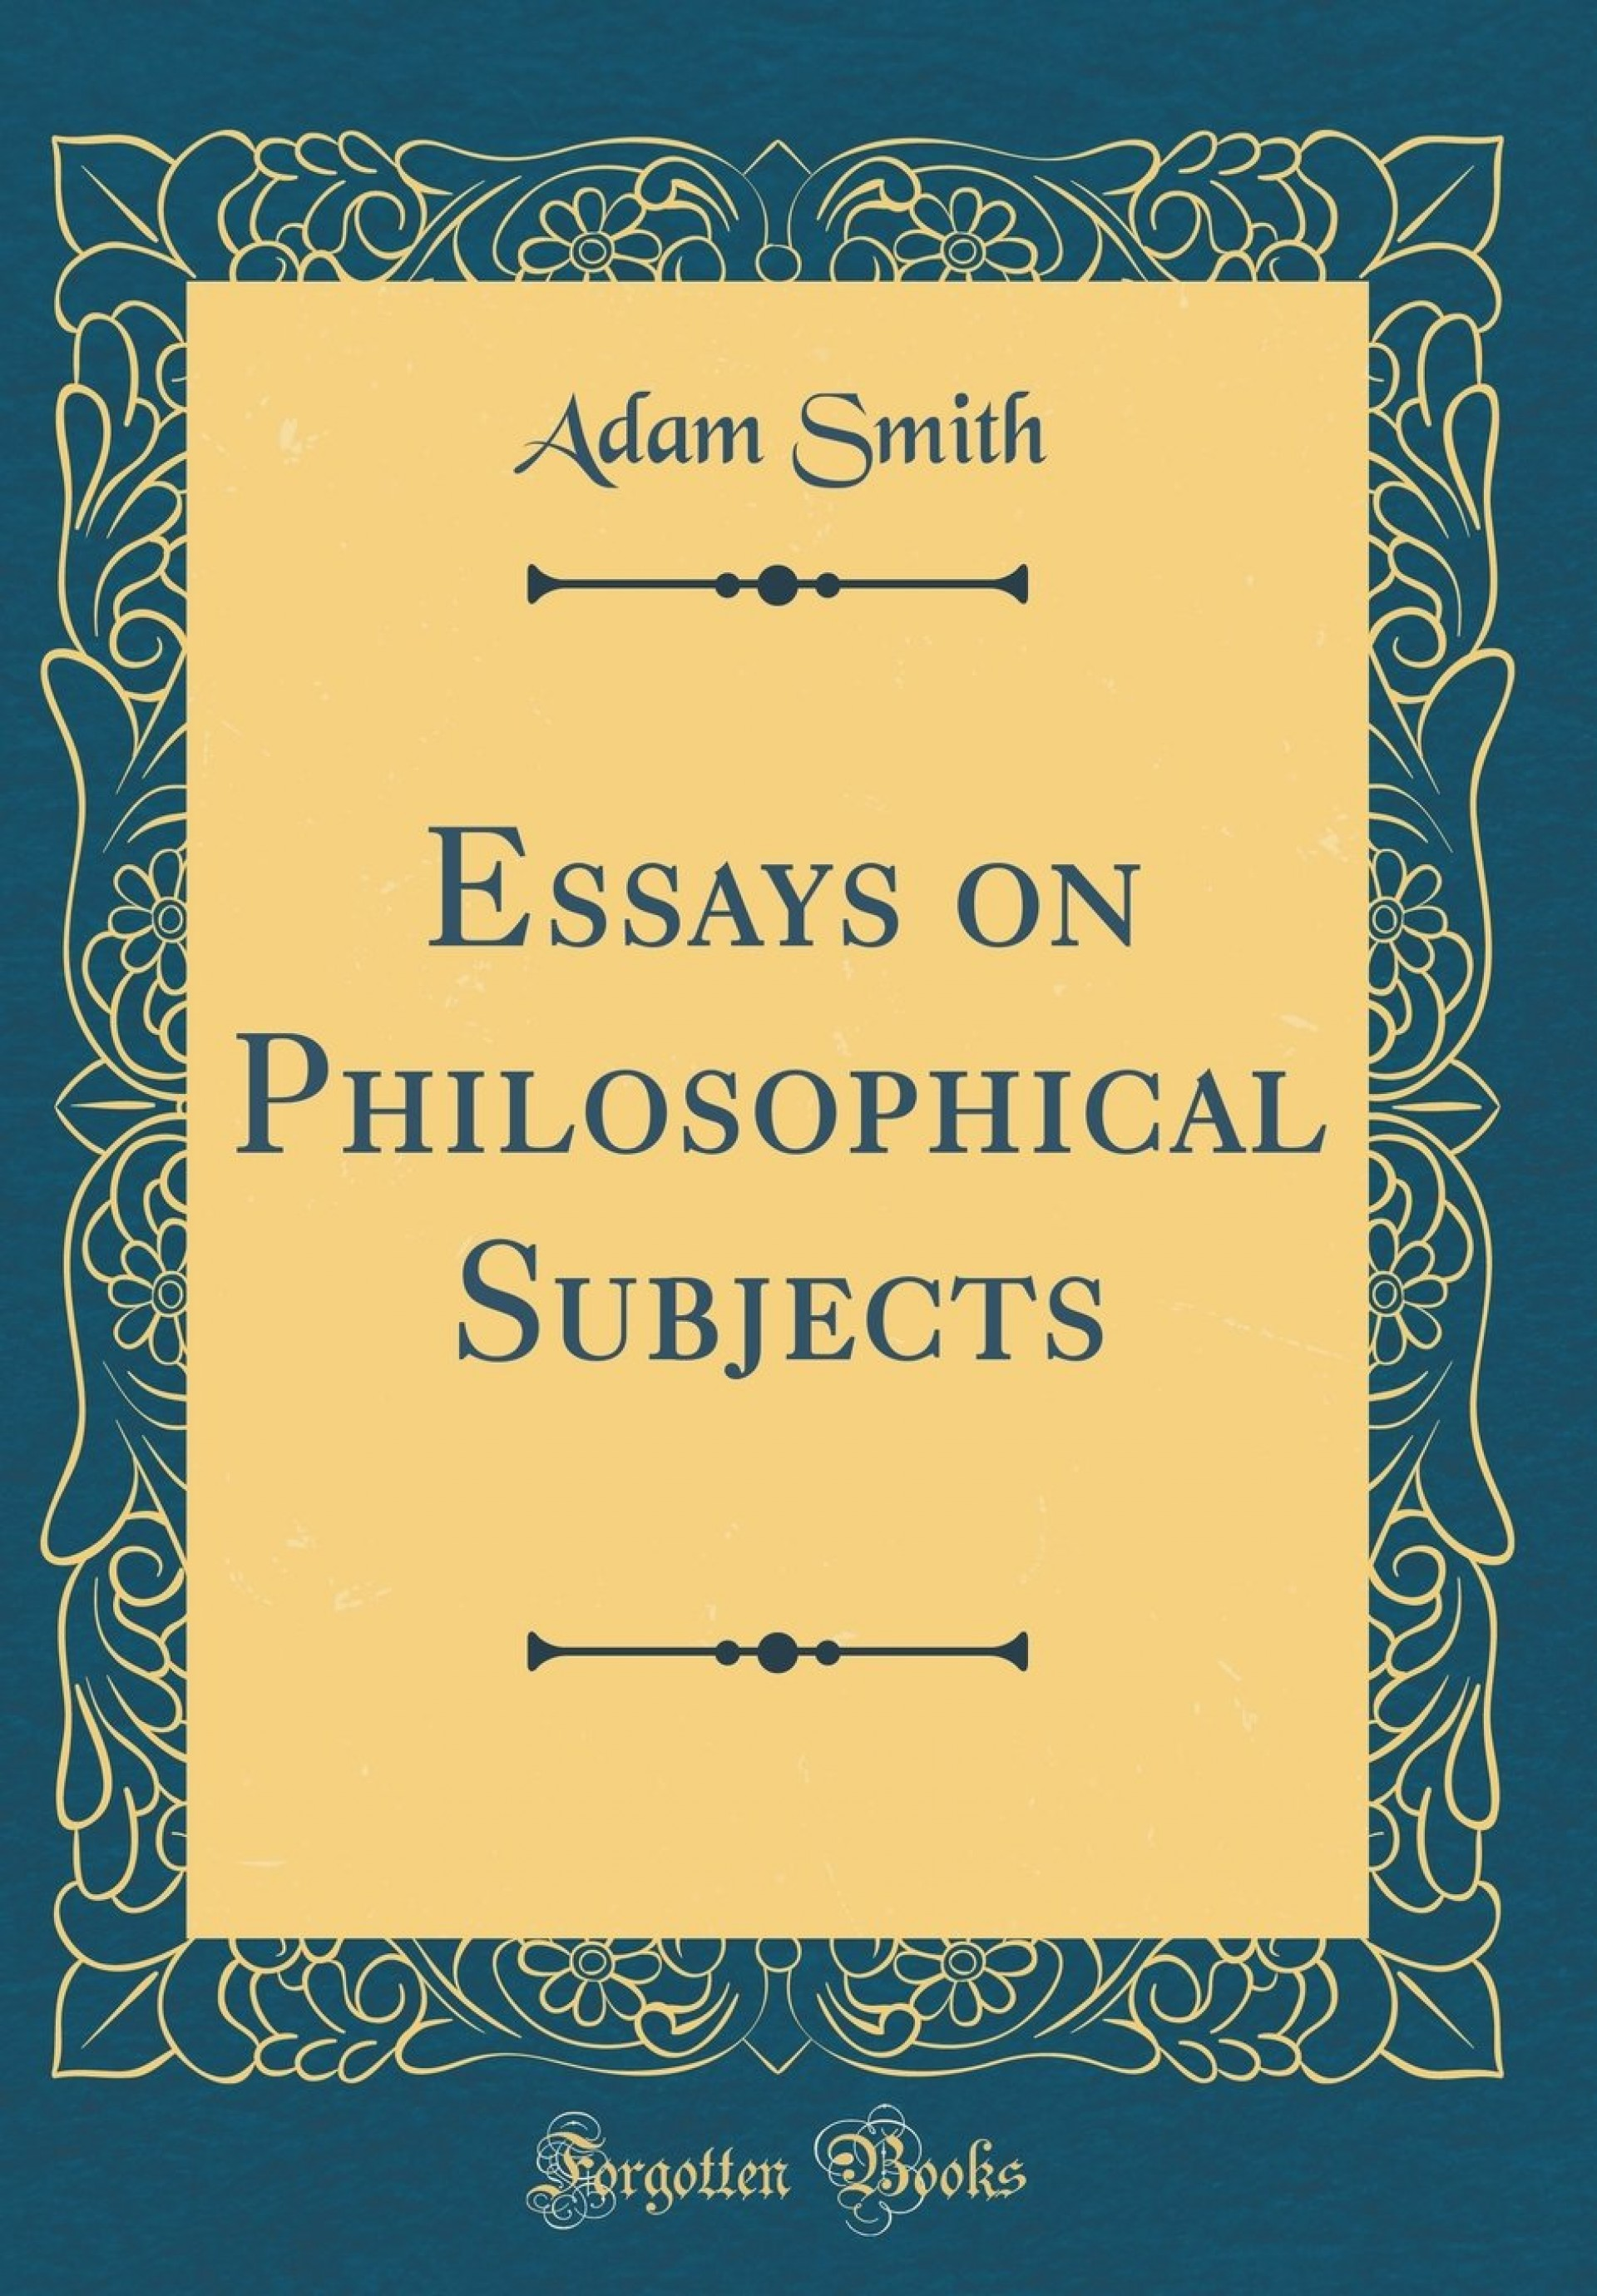 007 Rddwarl Essays On Philosophical Subjects Essay Best Smith Pdf 1920